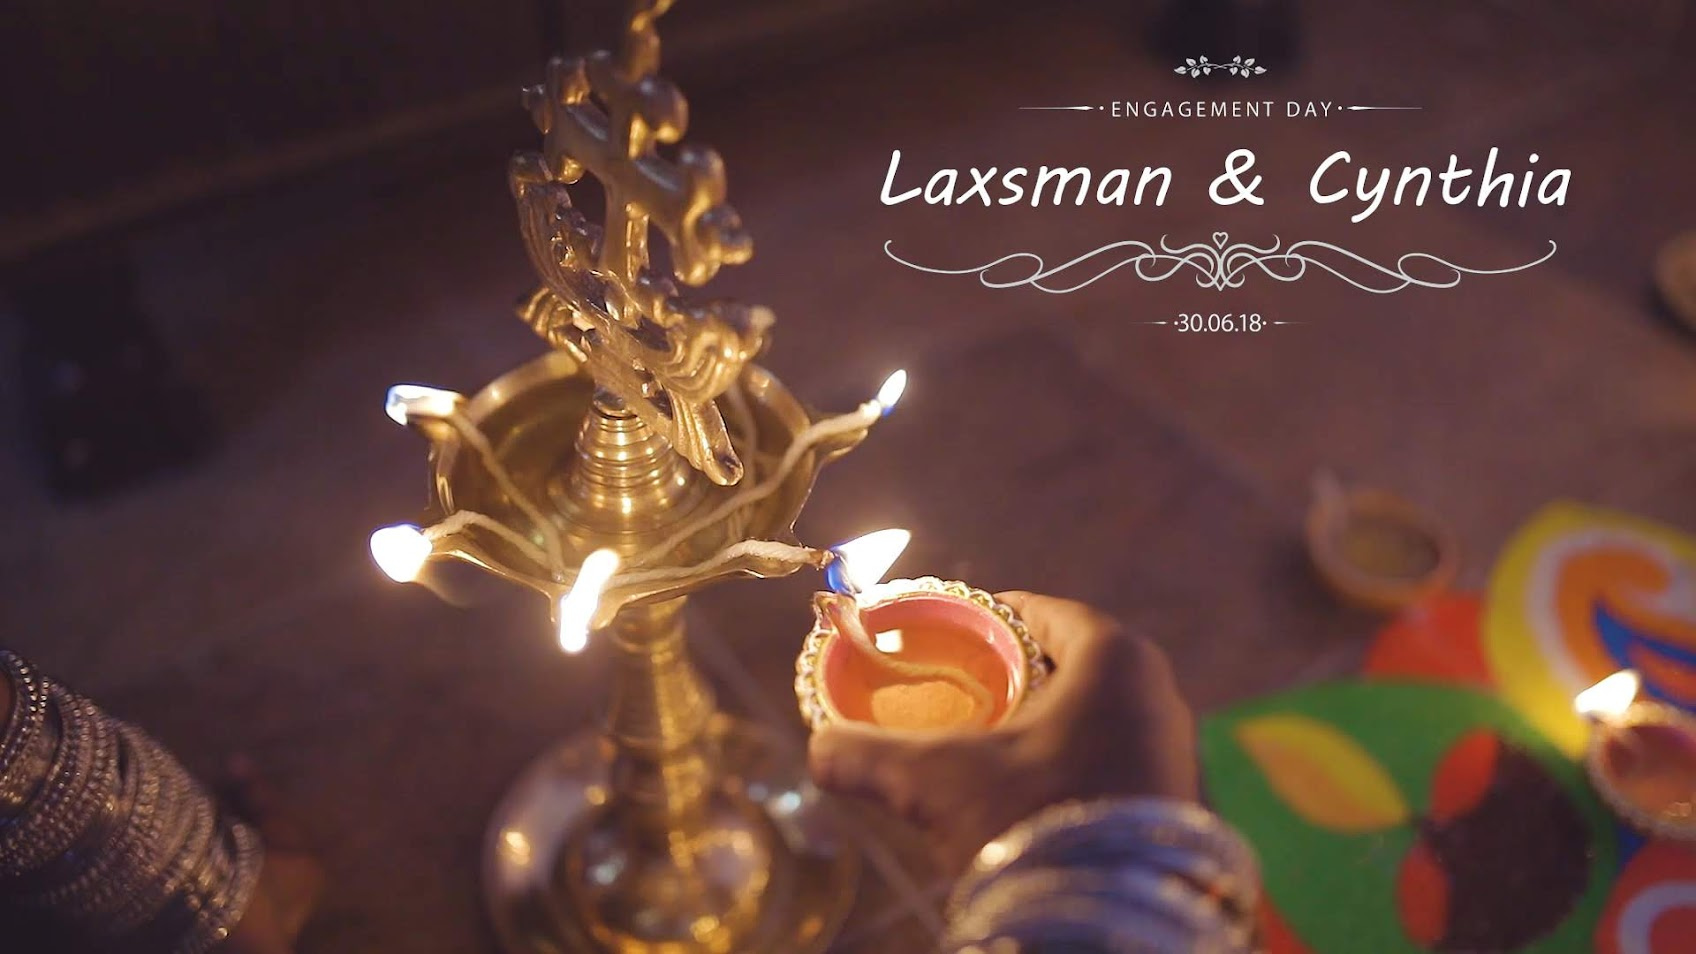 Laxsman & Cynthia Indian wedding temple cinematography at Penag